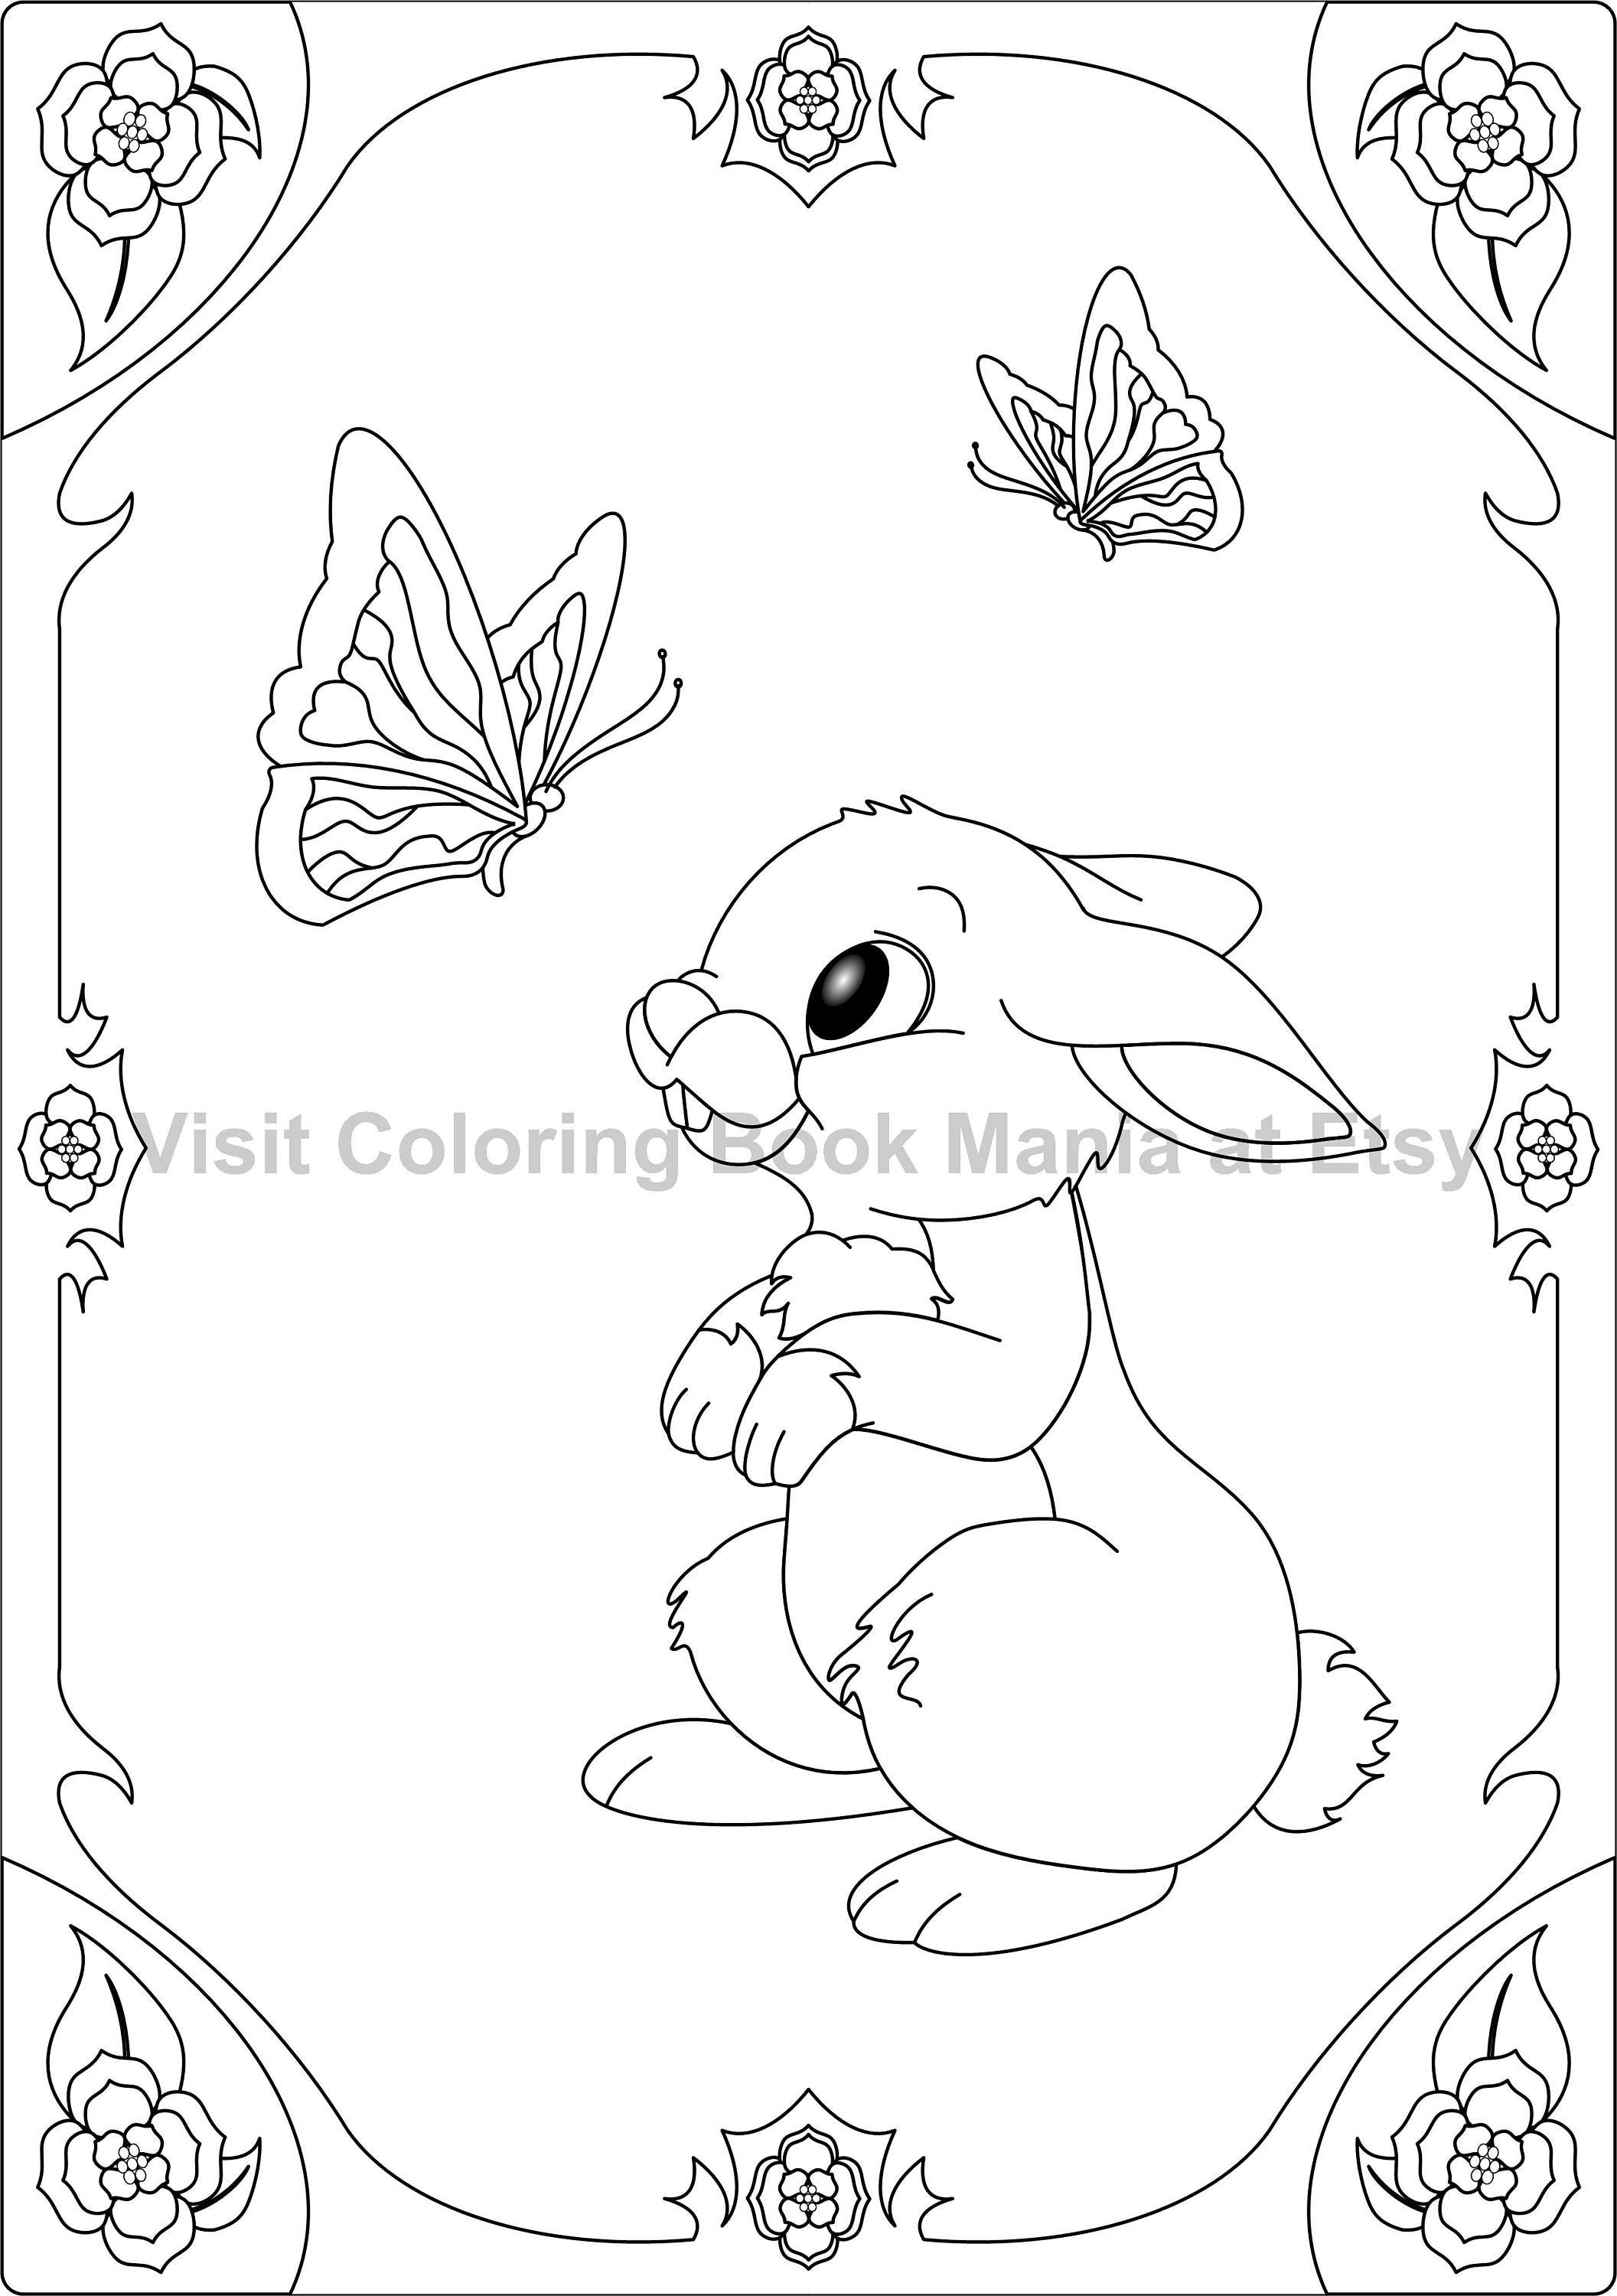 The coloring book of cards and envelopes flowers and butterflies - Coloring Book Mania